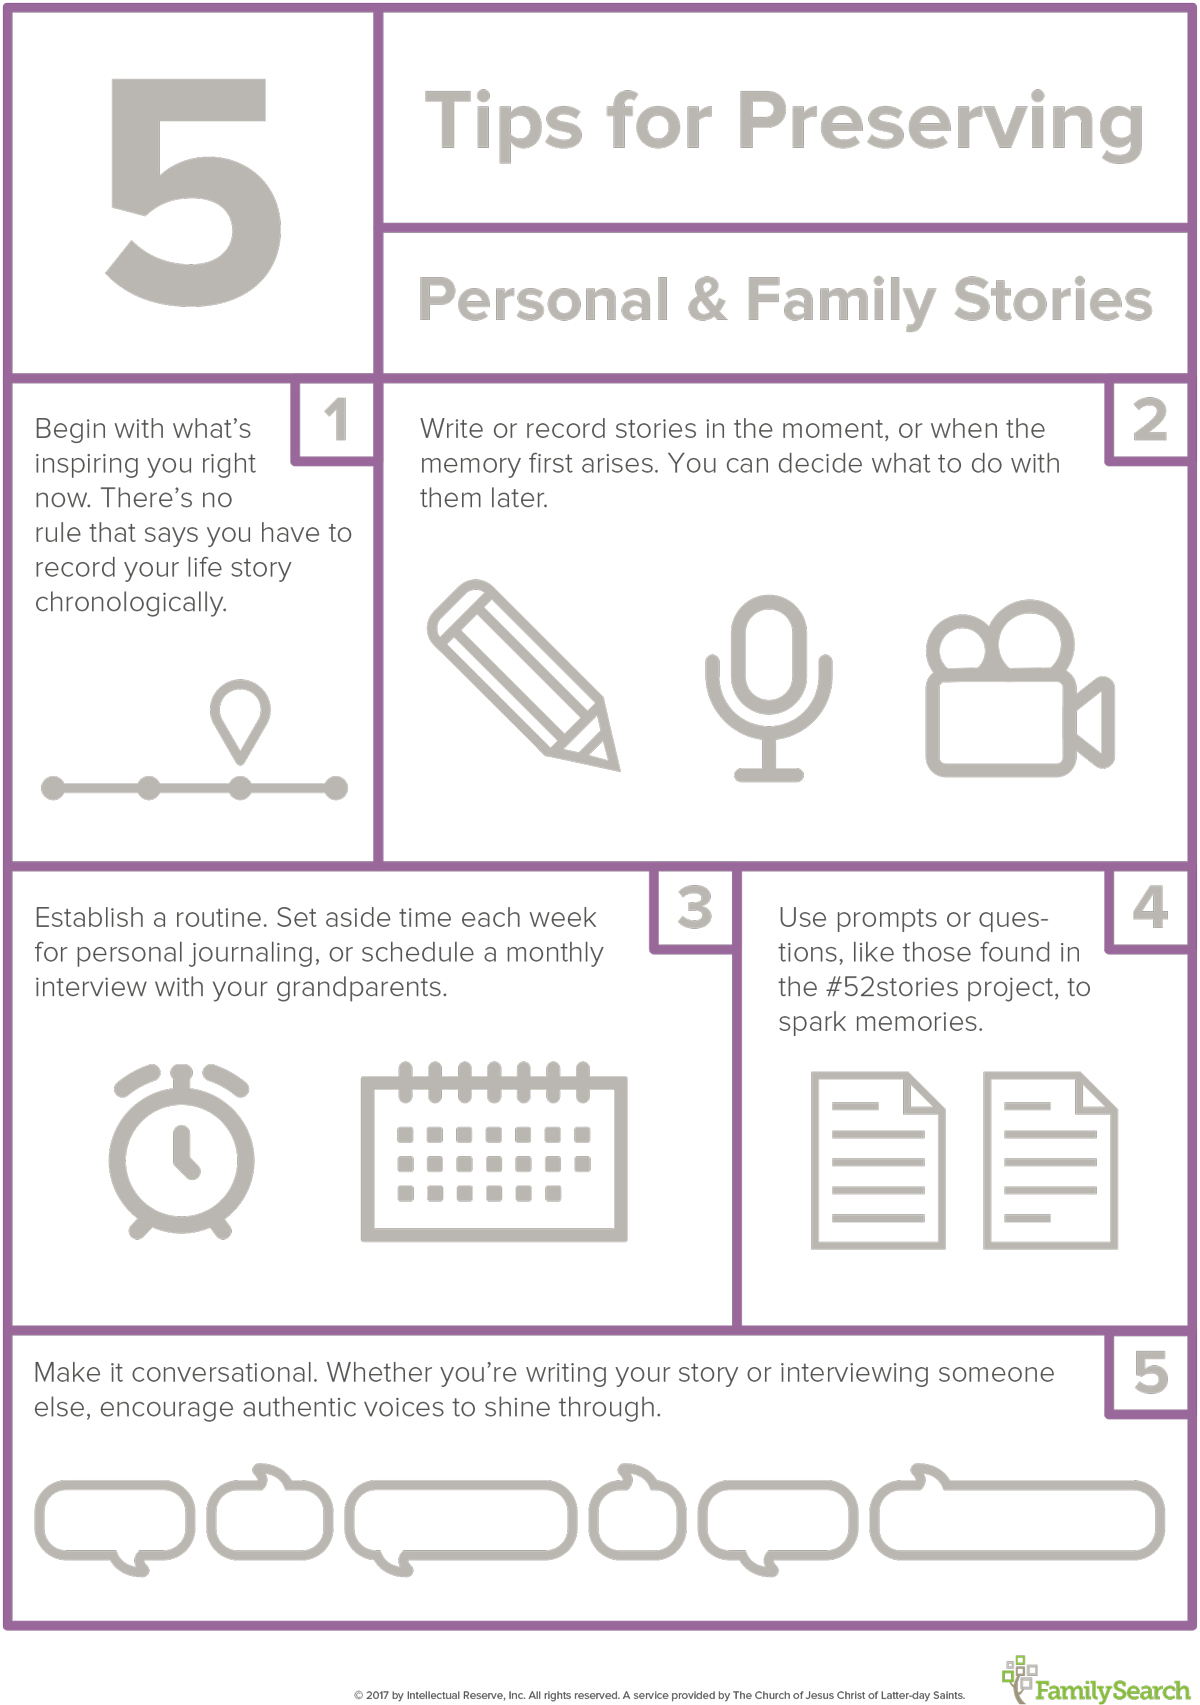 5 Tips to start preserving your family stories and memories.